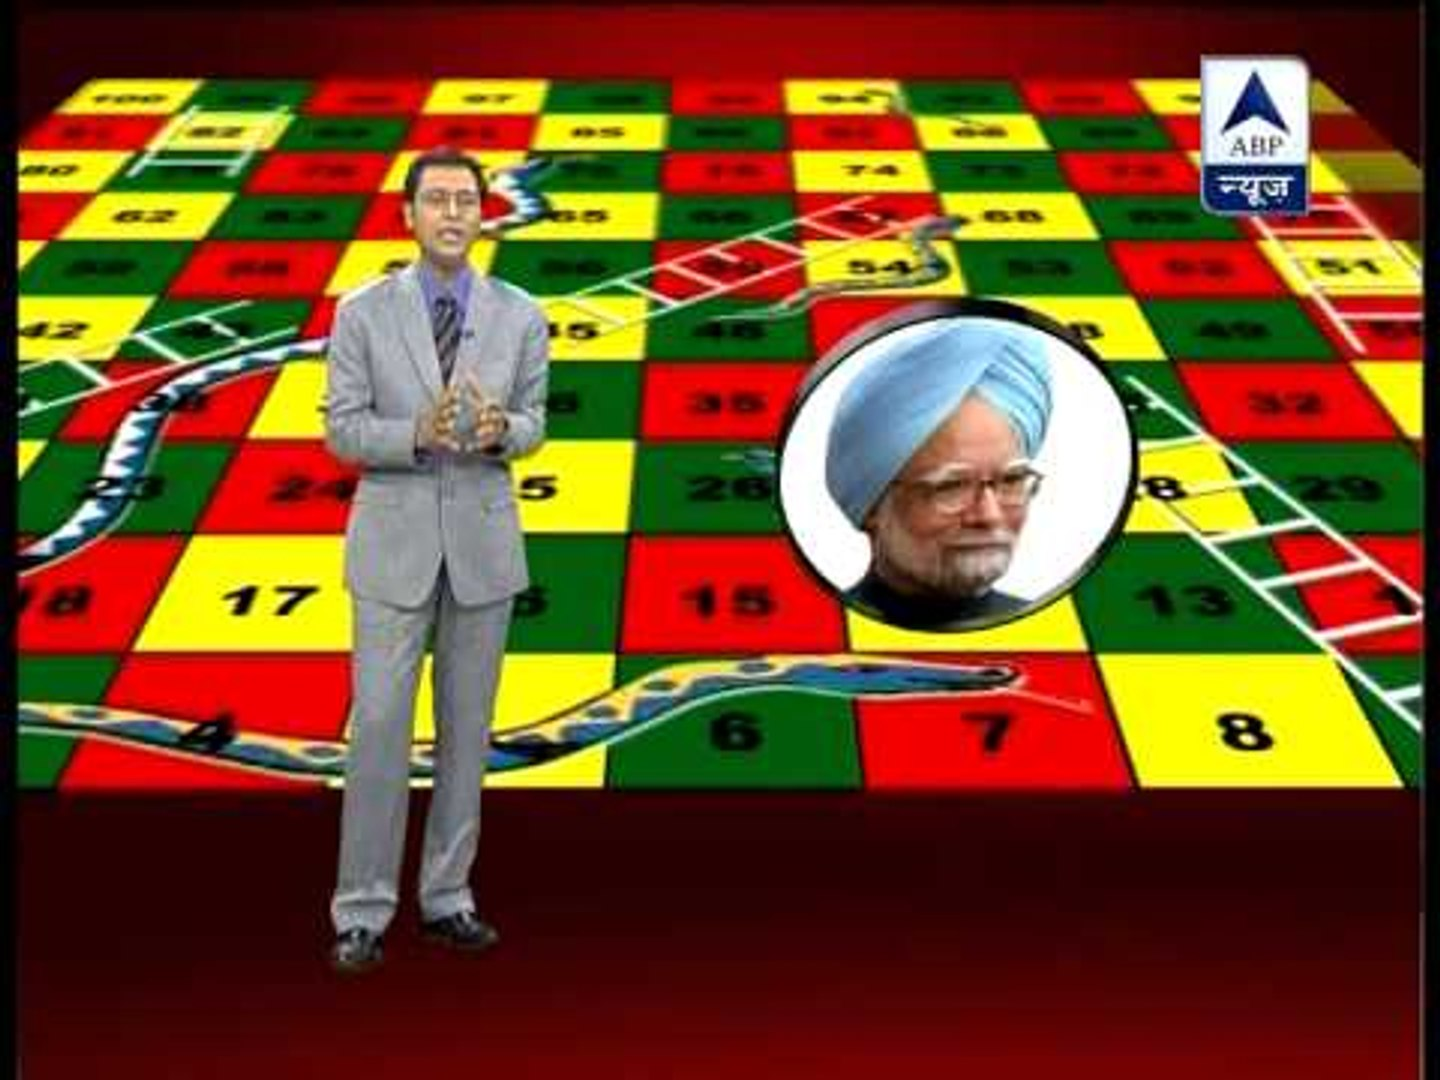 ABP News special: Political game of points